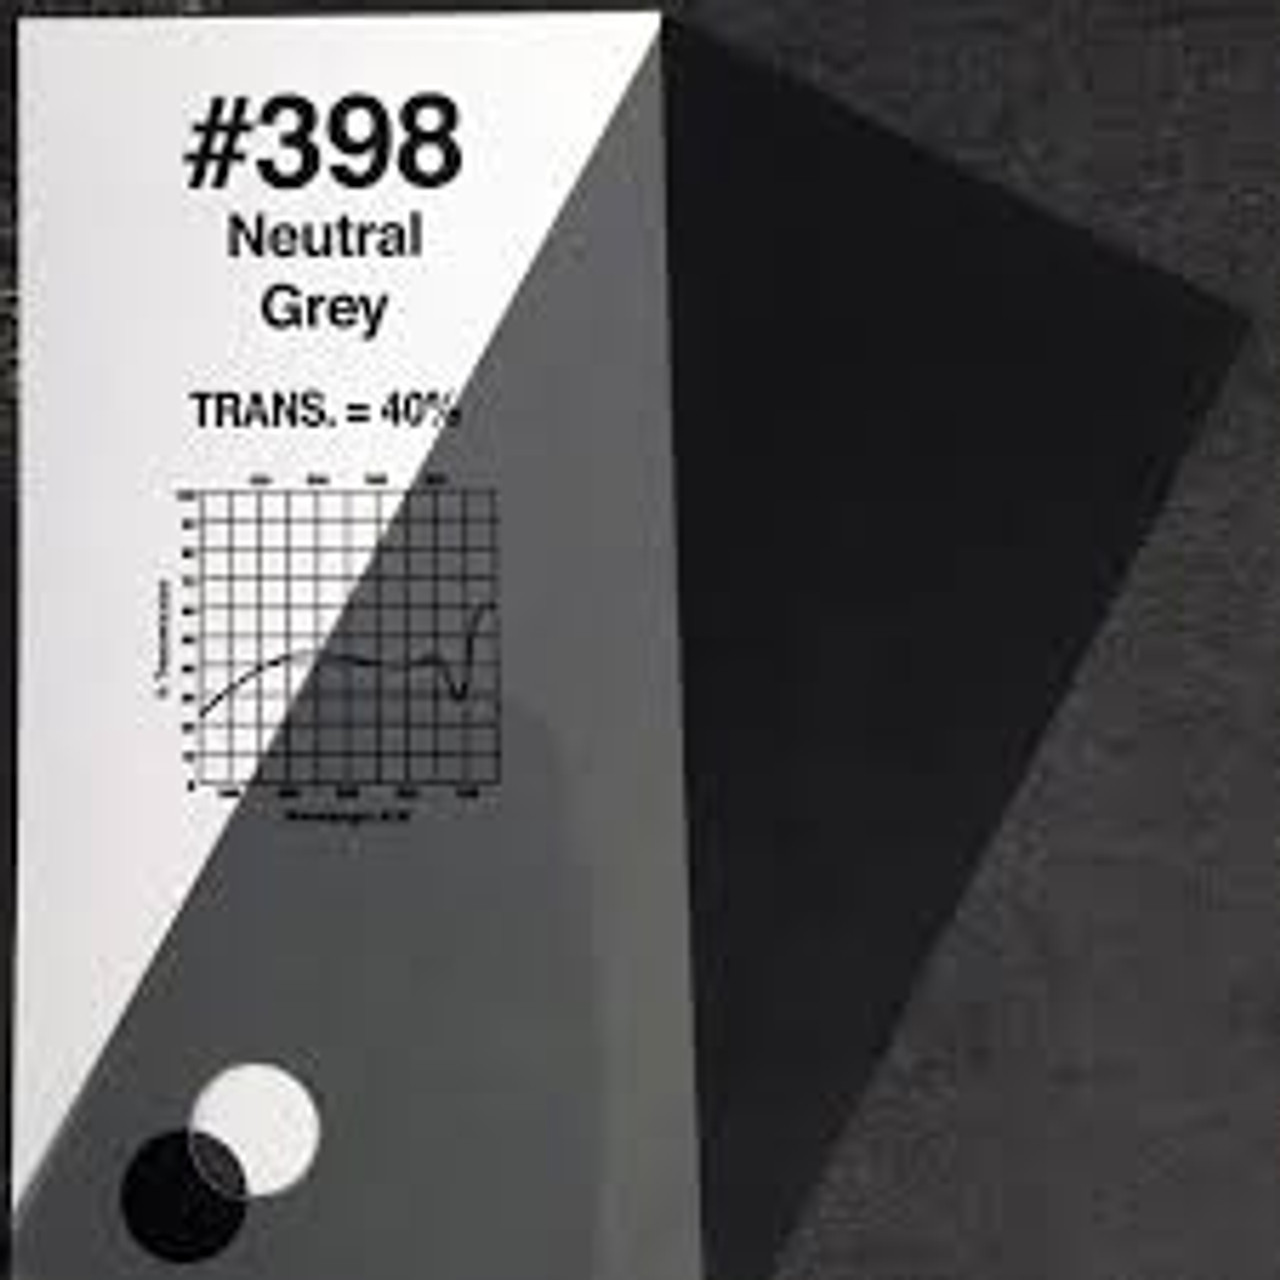 #0398 Rosco Gels Roscolux Neutral Grey, 20x24""